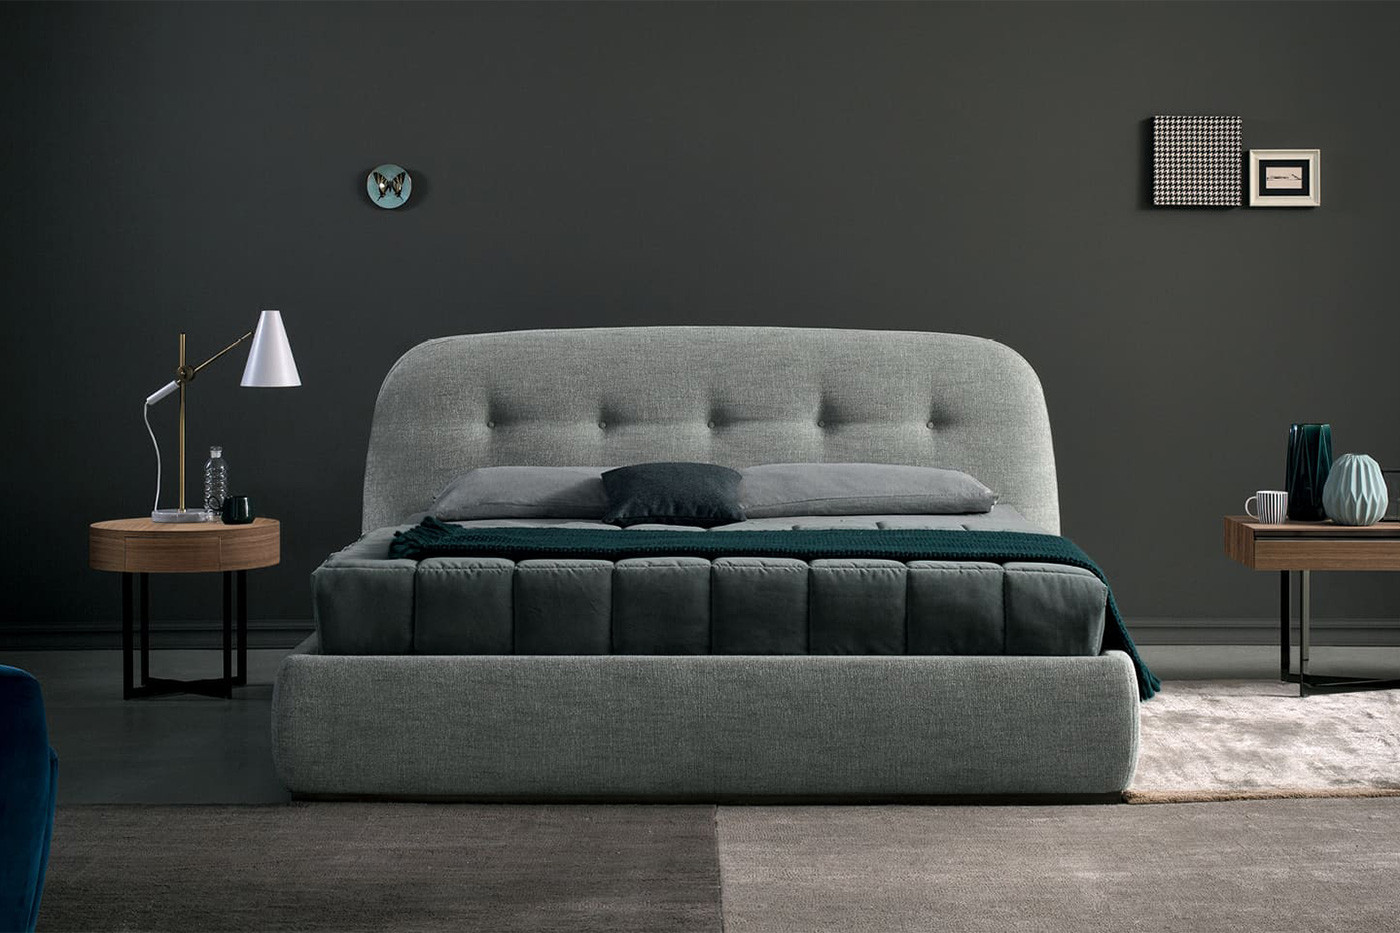 Upholstered king size bed with a button tufted, curved top headboard